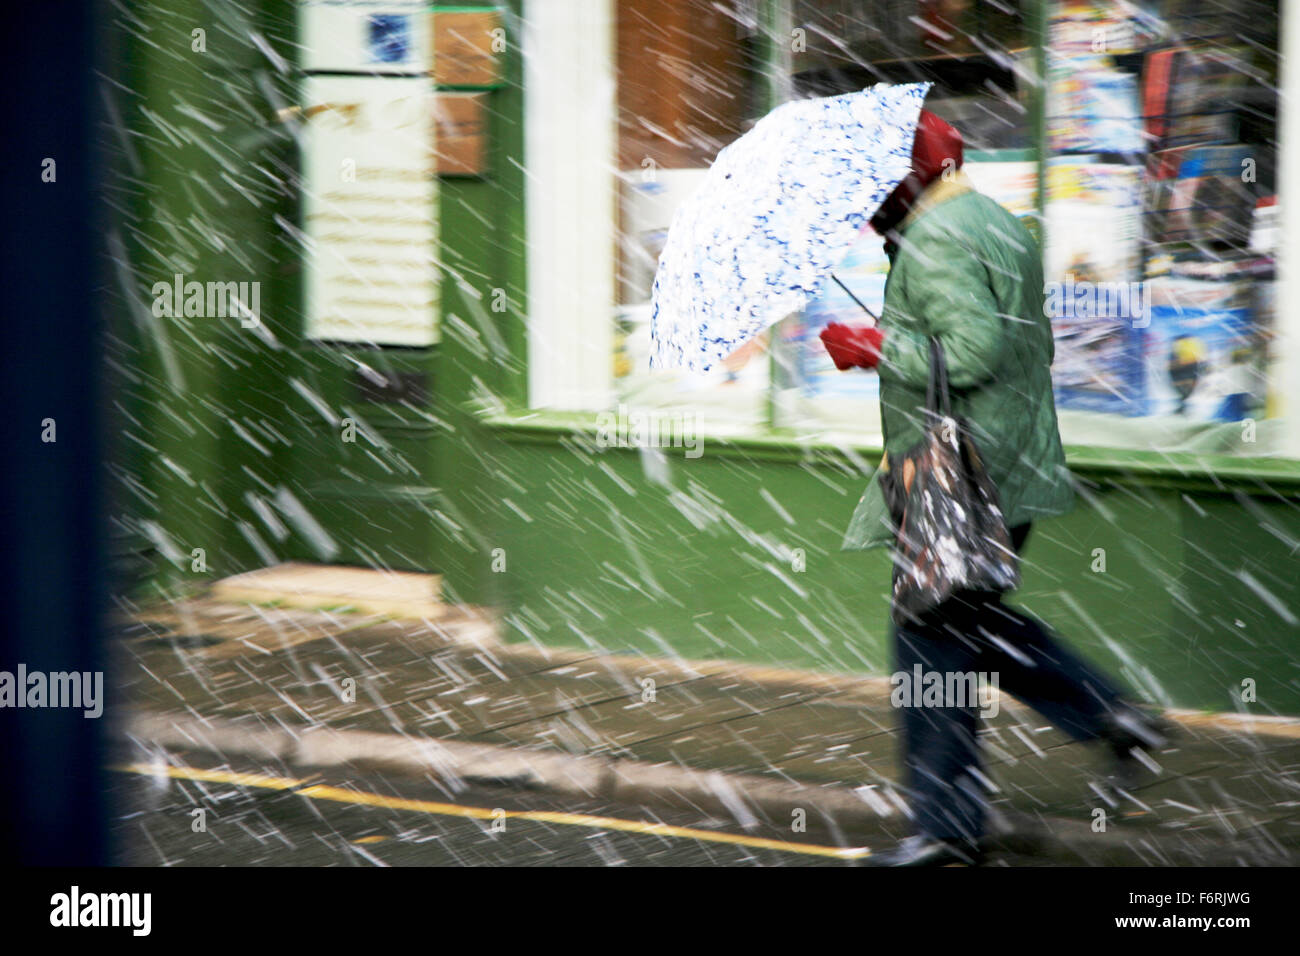 Snowing woman walking in snow bad weather using umbrella wind blowing gale UK England winter - Stock Image